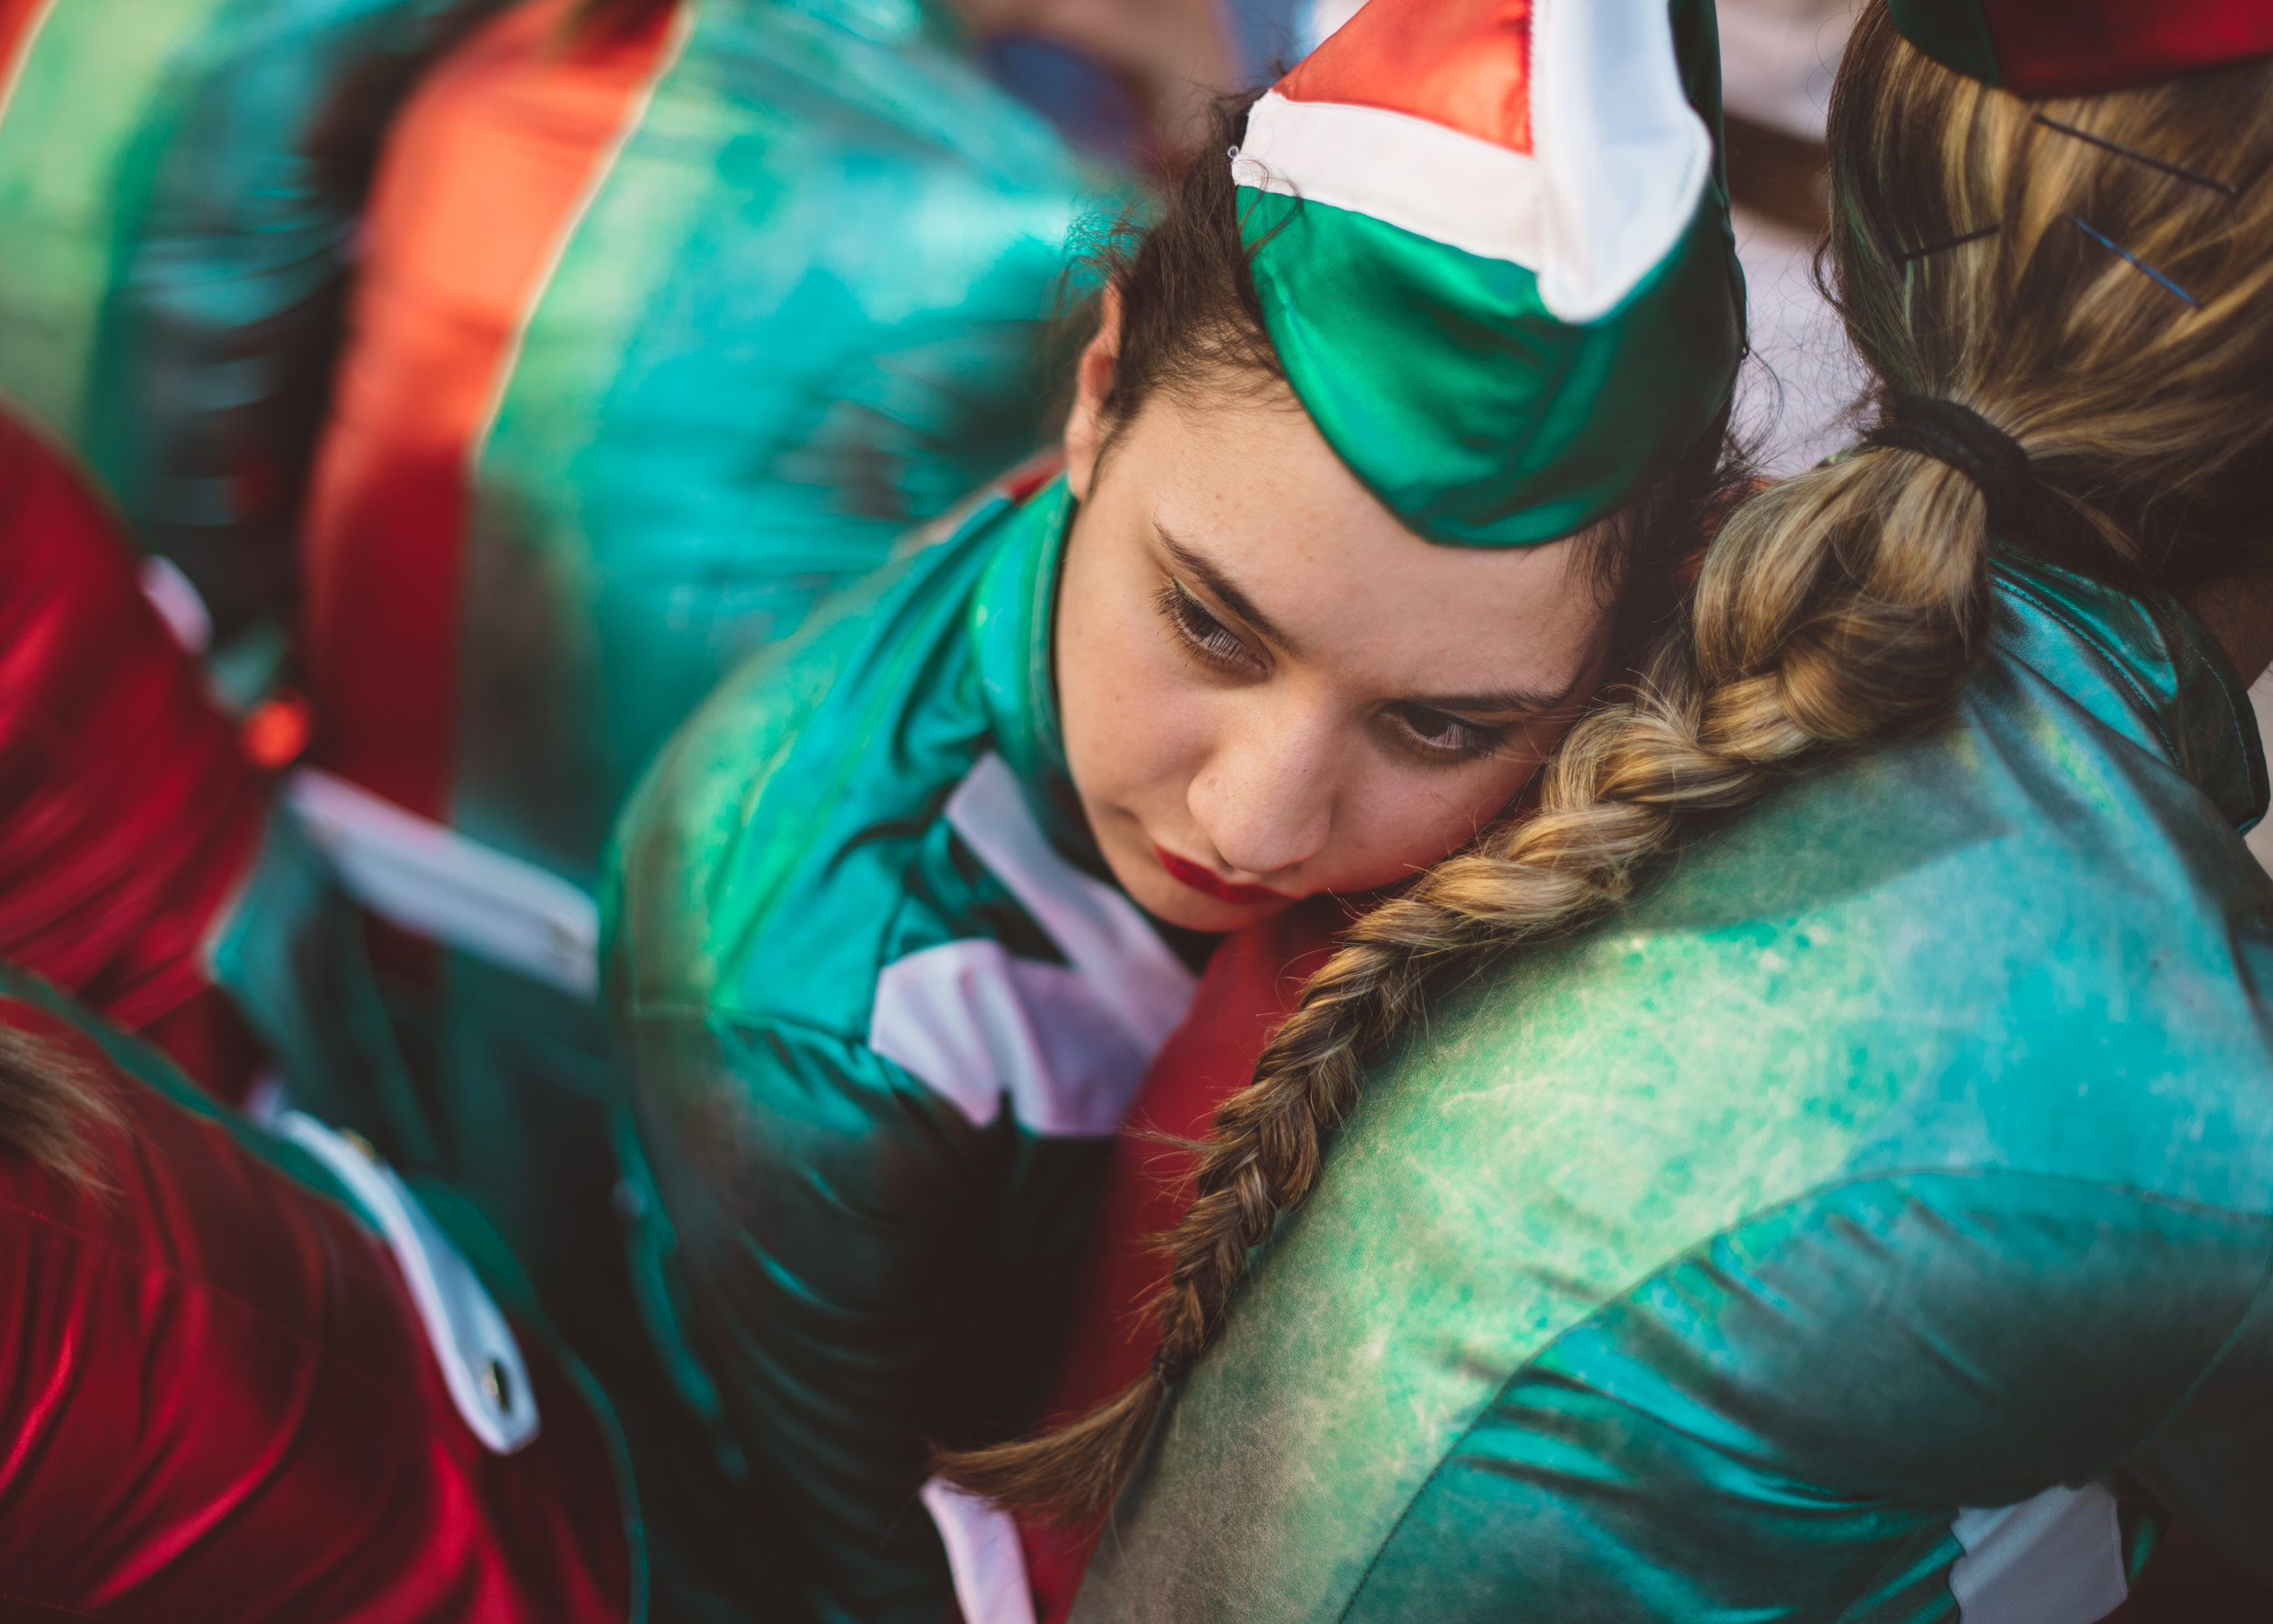 AGNESE MORGANTI  www.aggiemorganti.com  |  @aggiemorganti   Naples, Italy, April 8th 2018. Maria rests her head on the back of her best friend Teresa. Both girls are members of the Sailors Majorettes team from the town of Scafati, Italy. This particular day was very tiresome for the majorettes, as they had been performing non-stop since 6AM in villages around Naples on the occasion of the Madonna dell'Arco, a very popular religious festival. Majorette teams are a beloved Italian tradition, however they have recently become a new way for younger girls to find a platform for belonging and self expression, exploring ideas such as sisterhood, body confidence, discipline and empowerment.